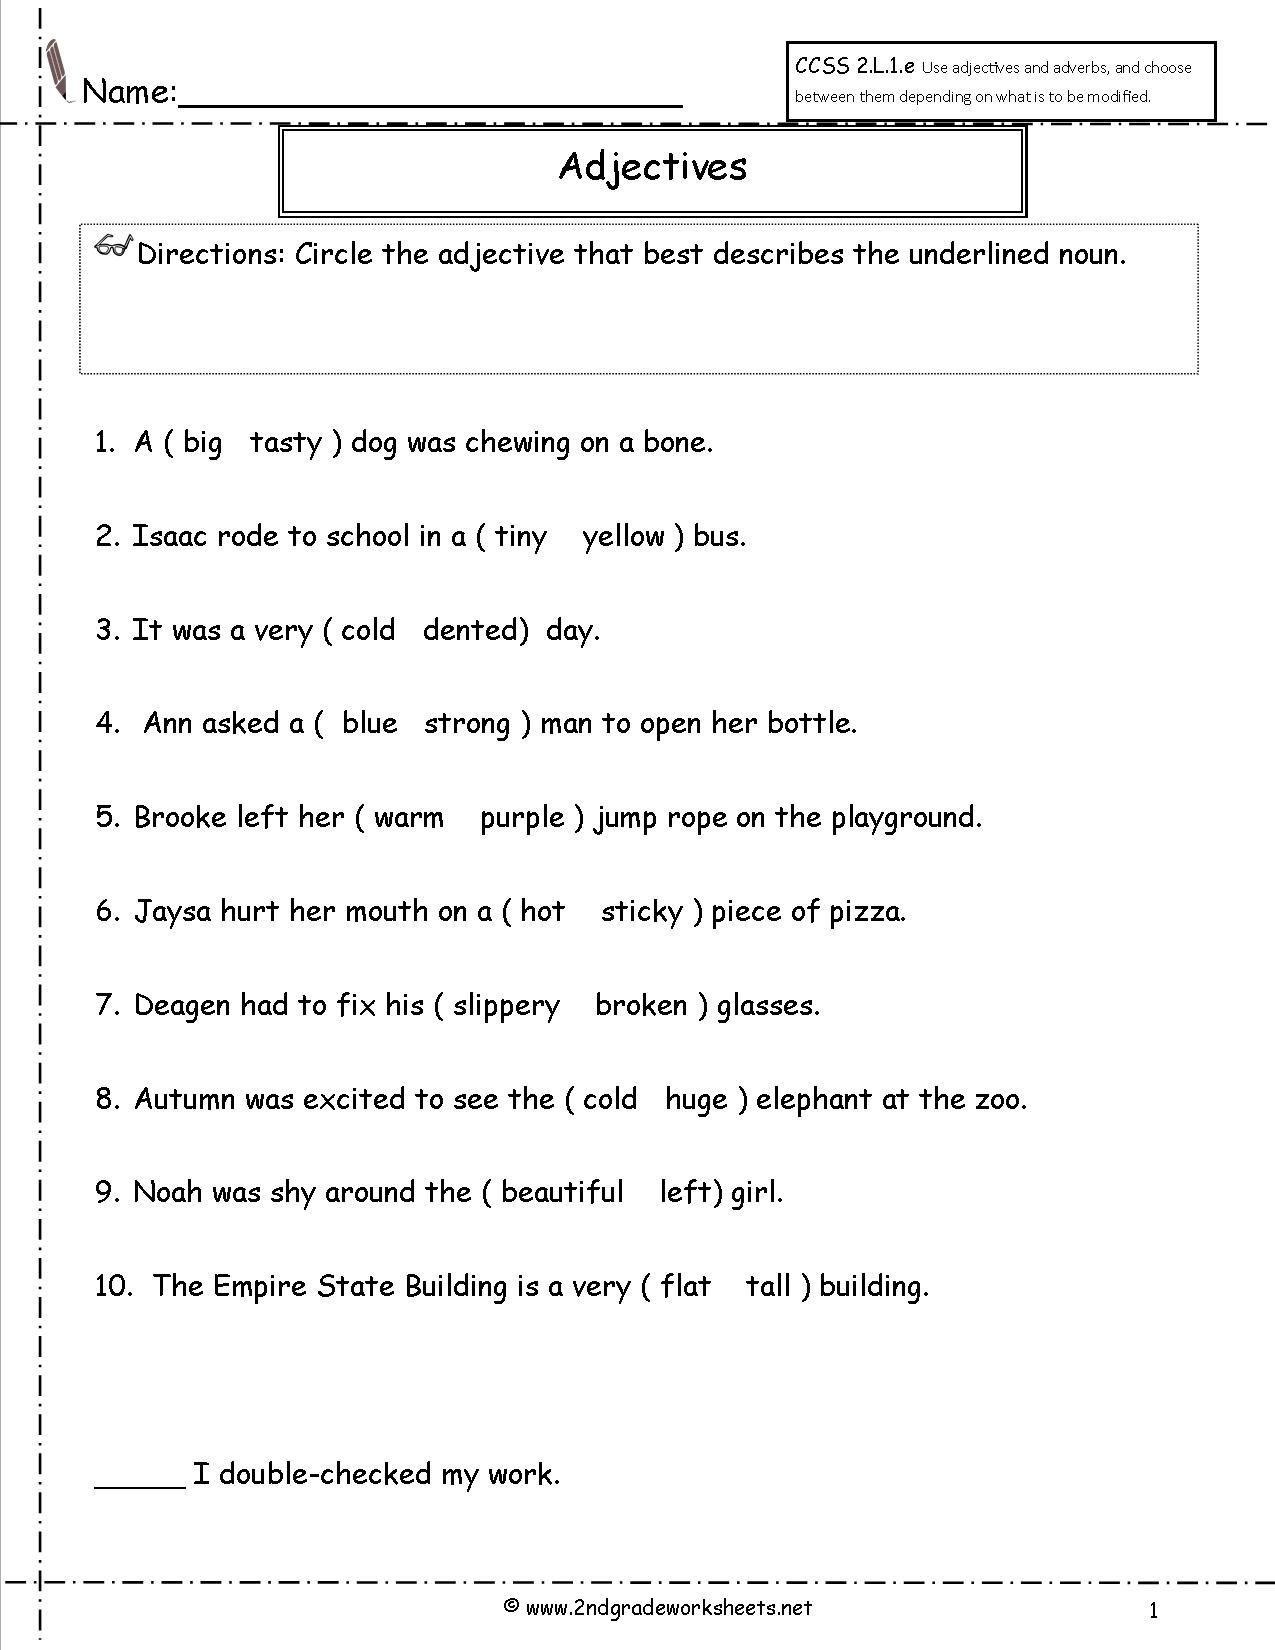 Adjective Worksheets 2nd Grade Adjectives Worksheet